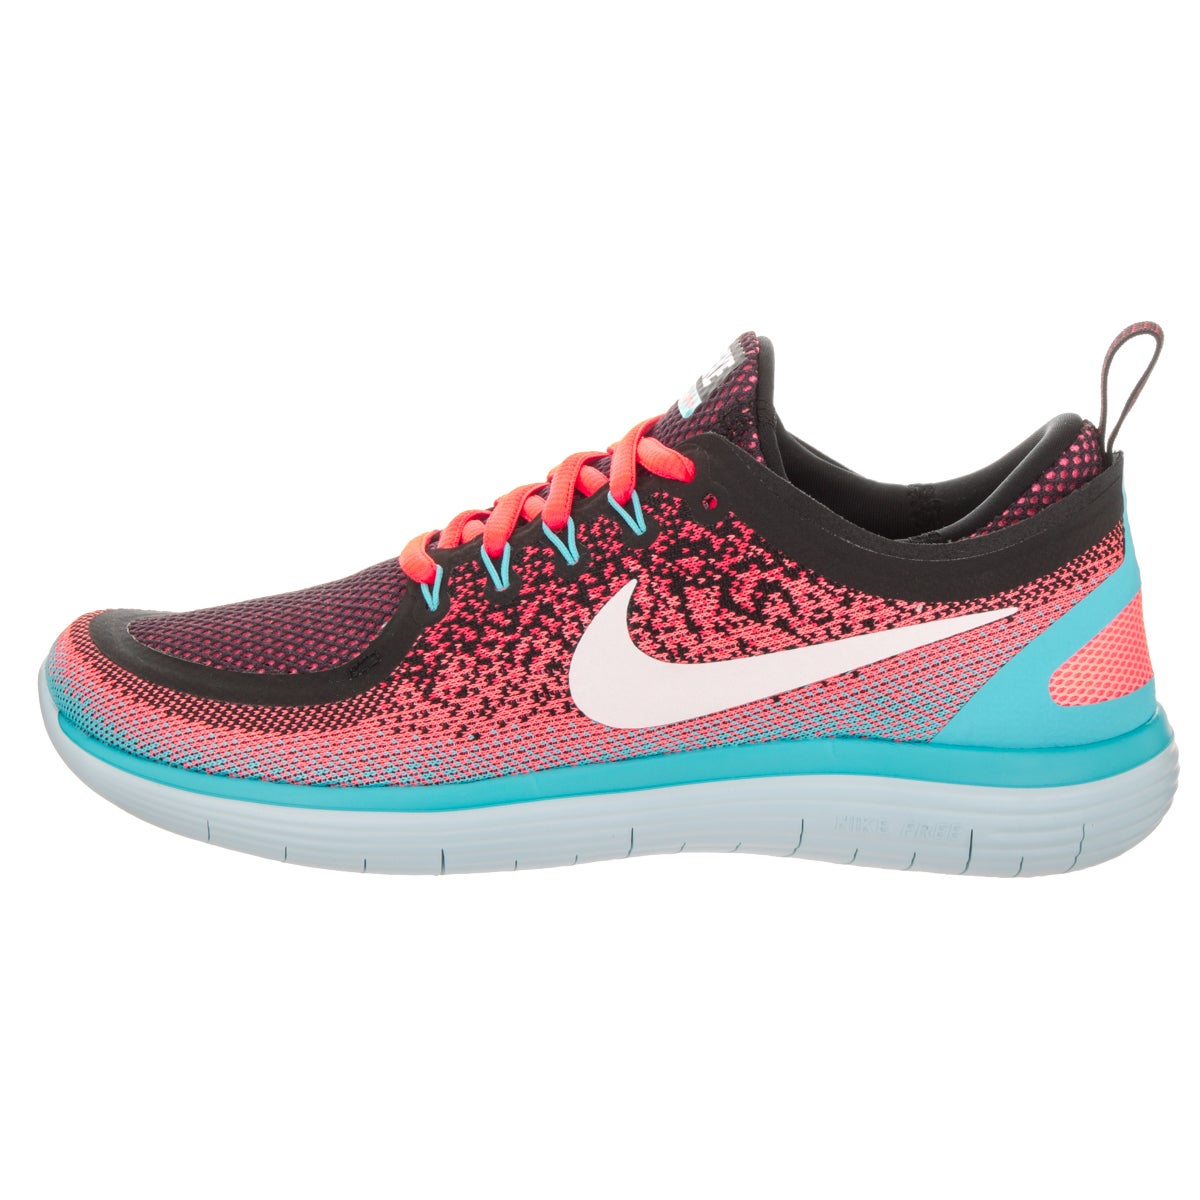 055ad13802b7 Shop Nike Women s Free RN Distance 2 Running Shoes - Free Shipping Today -  Overstock - 14163282